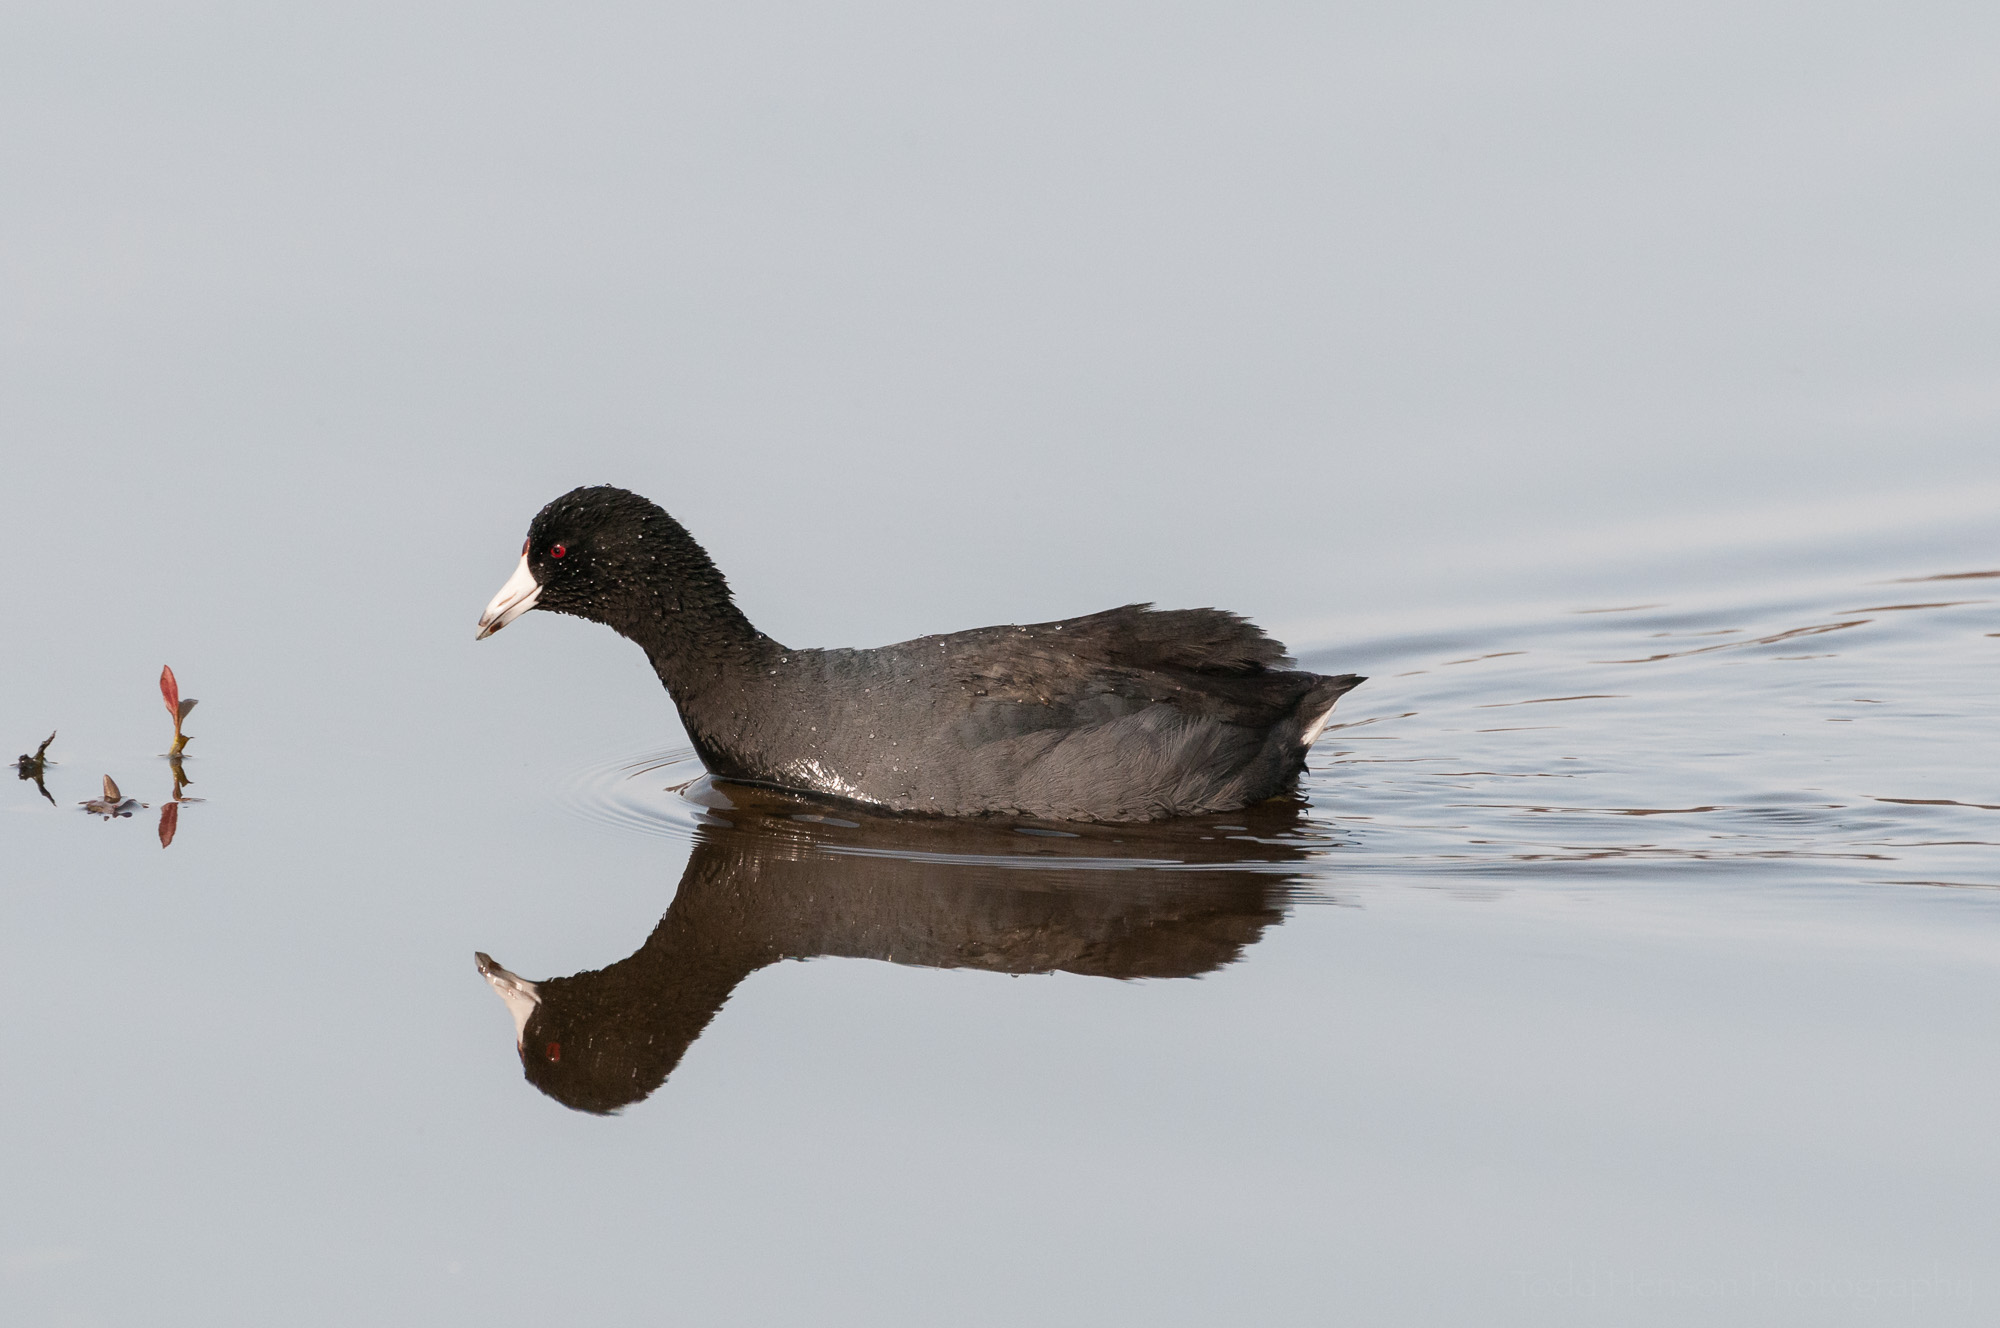 American Coot with reflection in still water